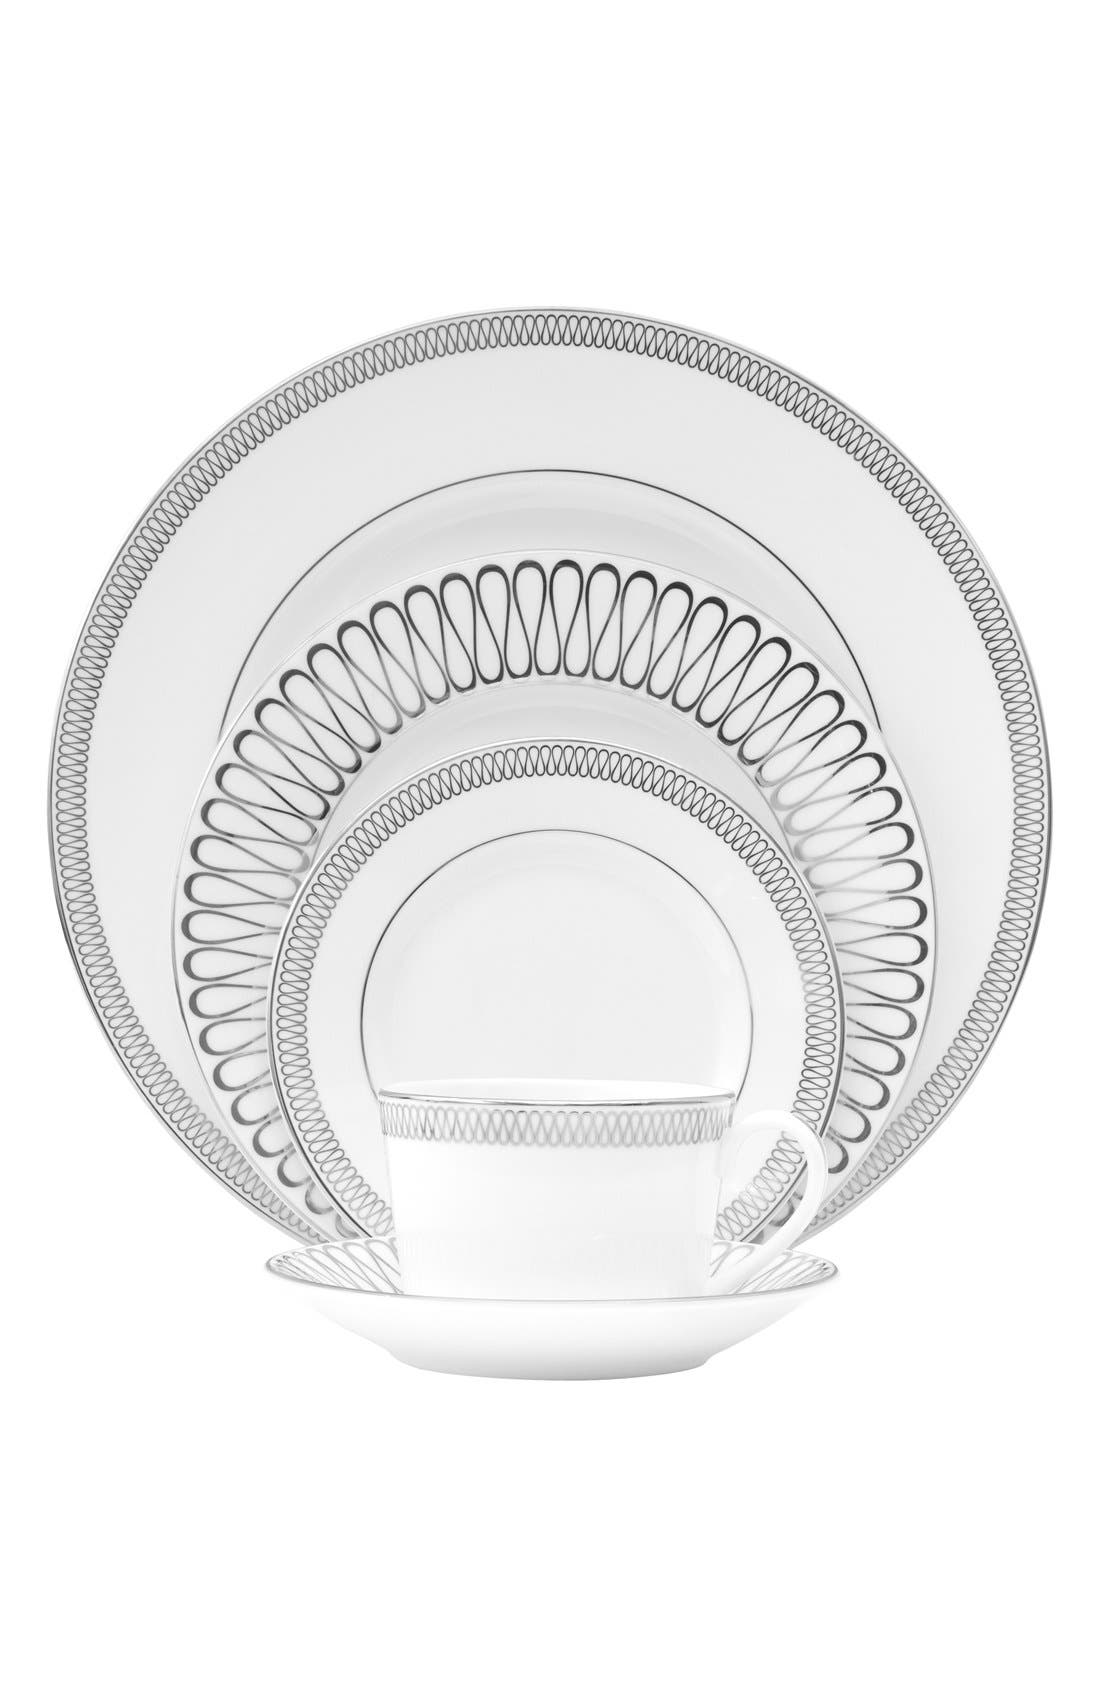 Monique Lhuillier Waterford 'Opulence' 5-Piece China Place Setting,                         Main,                         color,